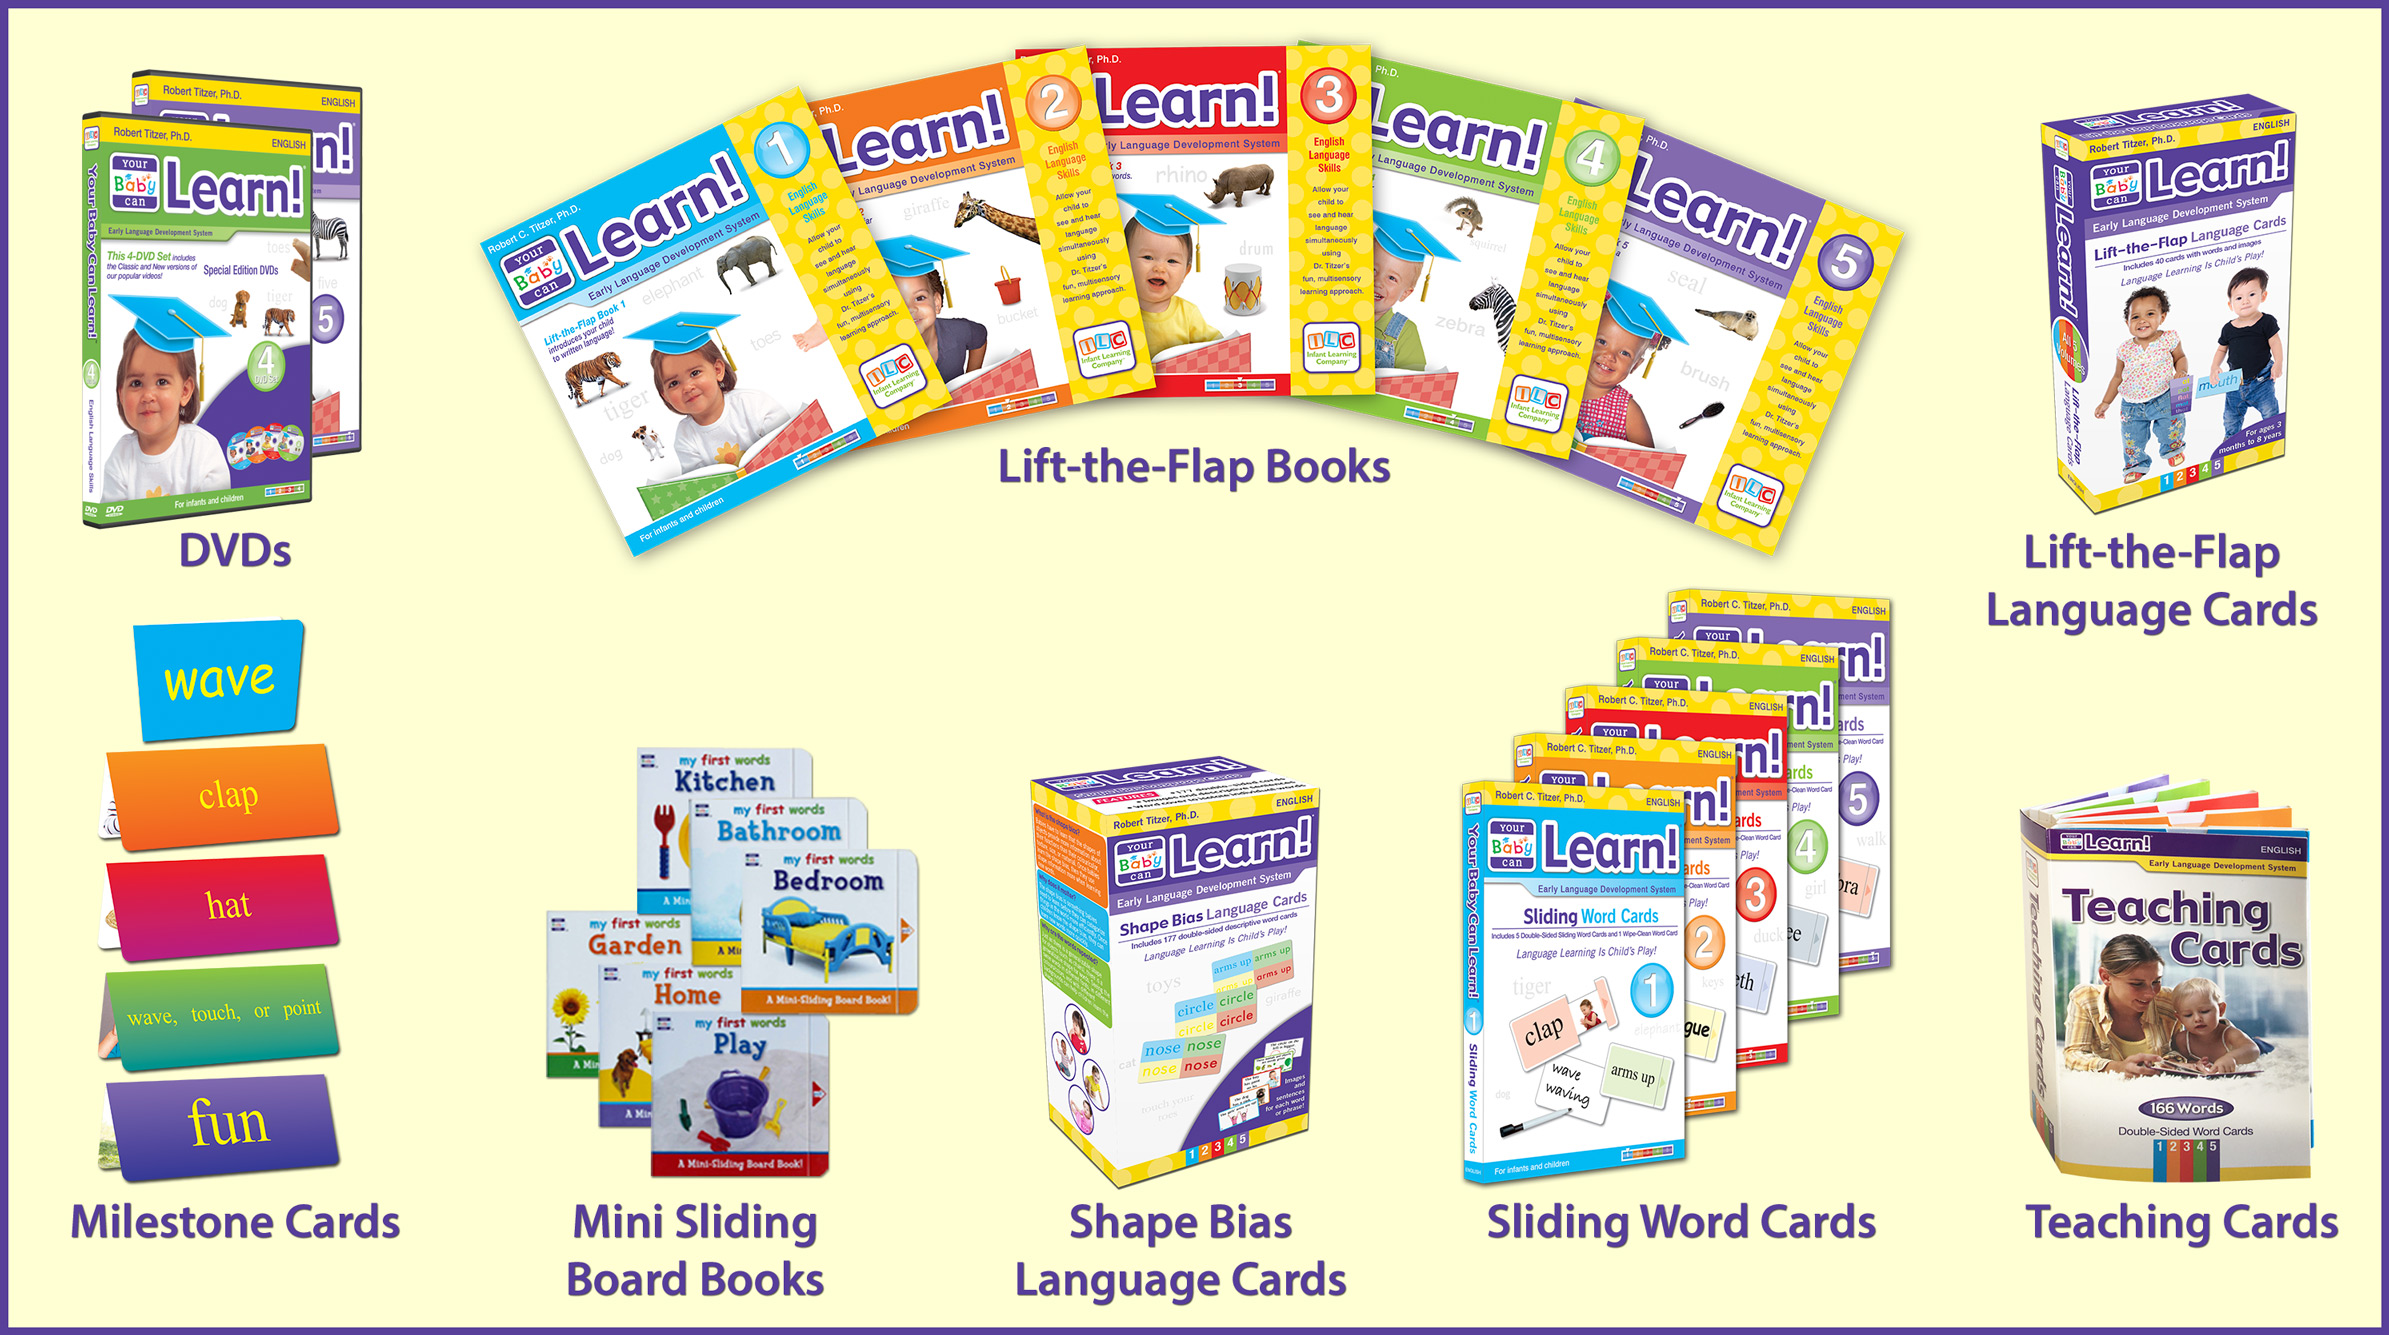 Your Baby Can Learn! Products